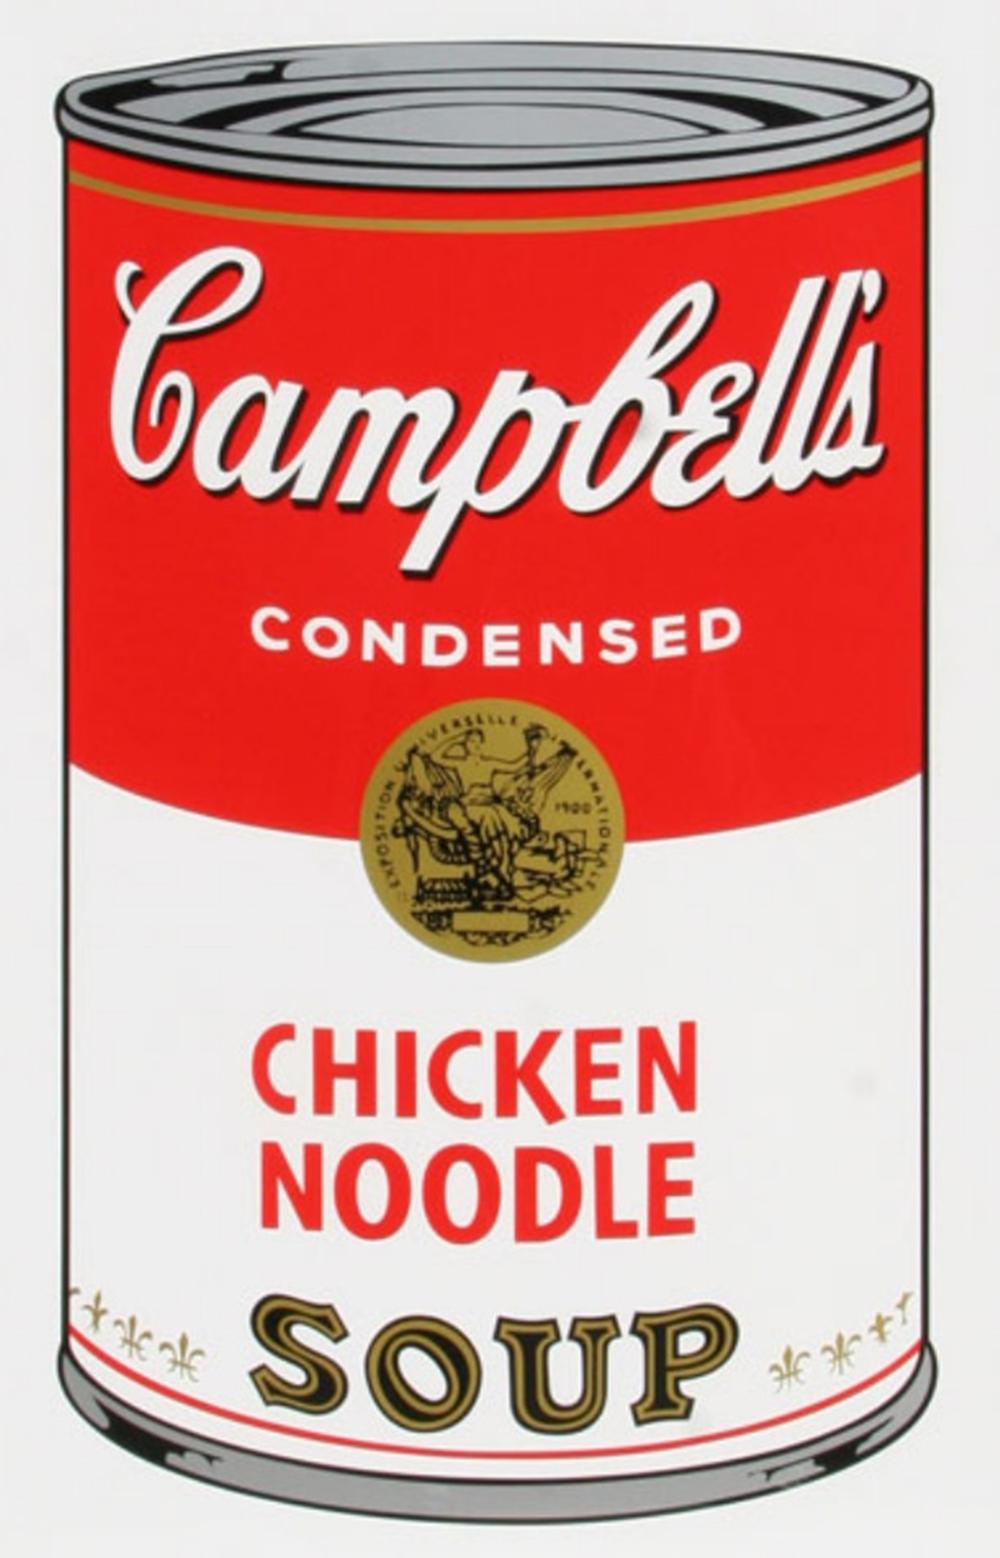 ANDY WARHOL CHICKEN NOODLE SOUP CAN